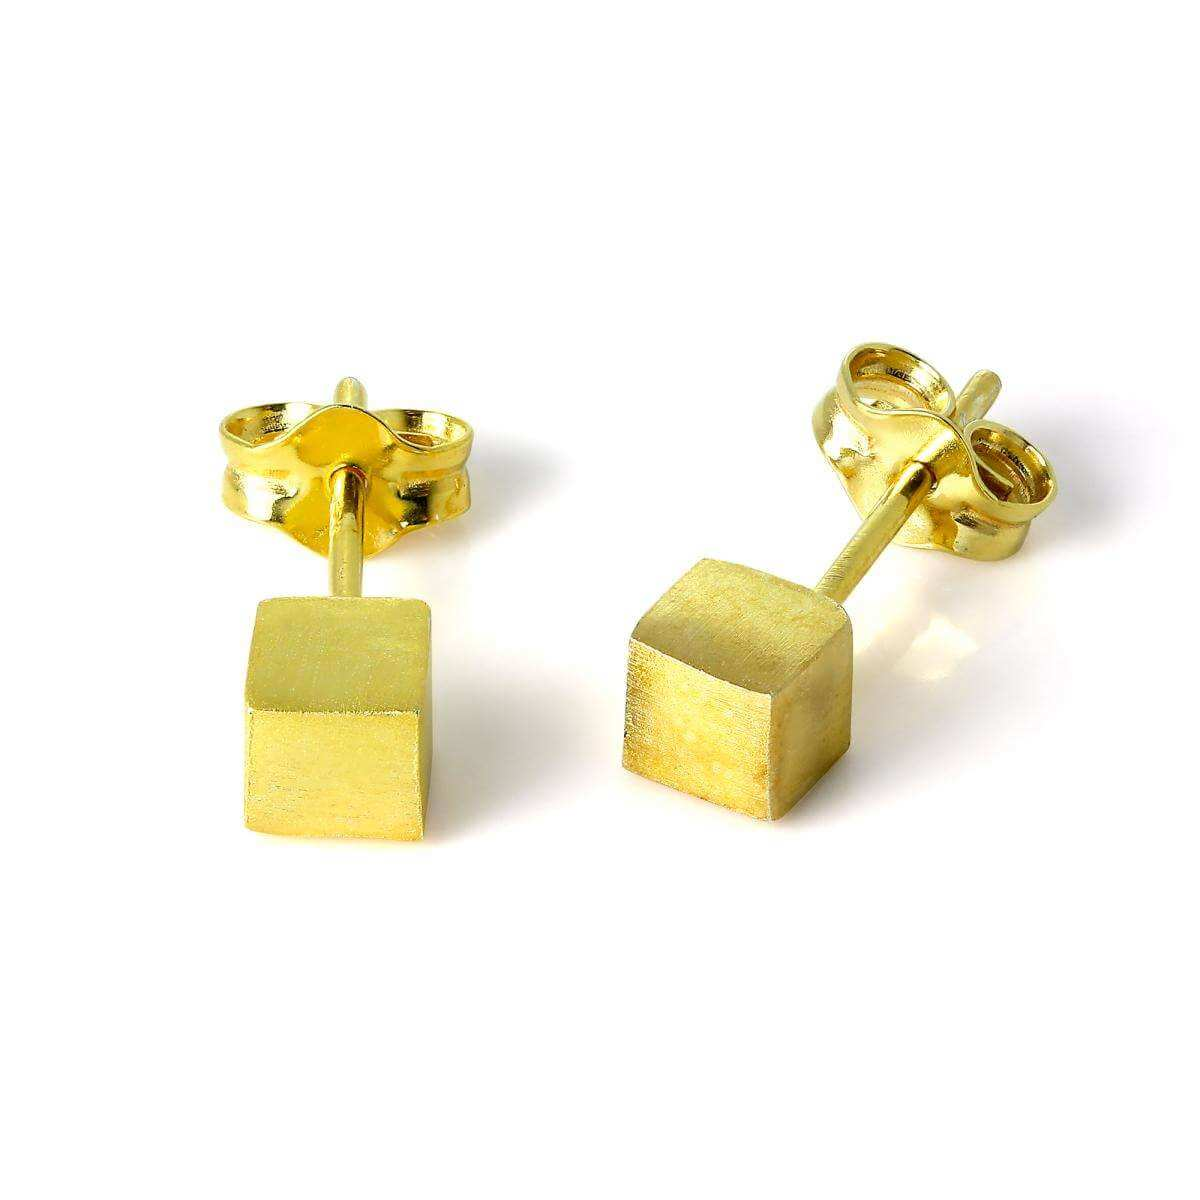 Gold Plated Sterling Silver Matt Finish 4mm Cube Stud Earrings